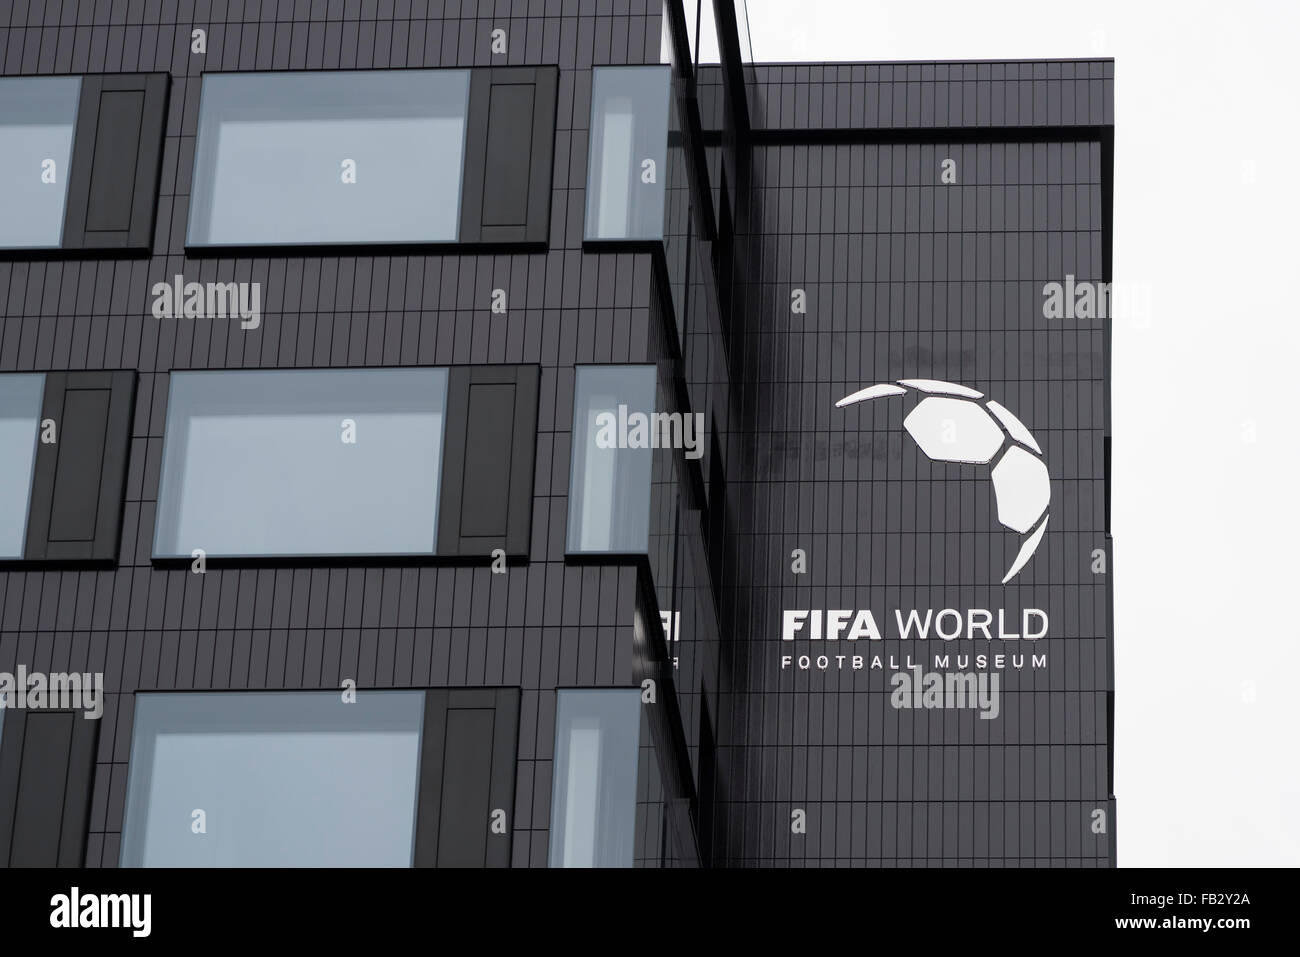 Outside view of the future FIFA World Football Museum at Zurich, Switzerland. - Stock Image